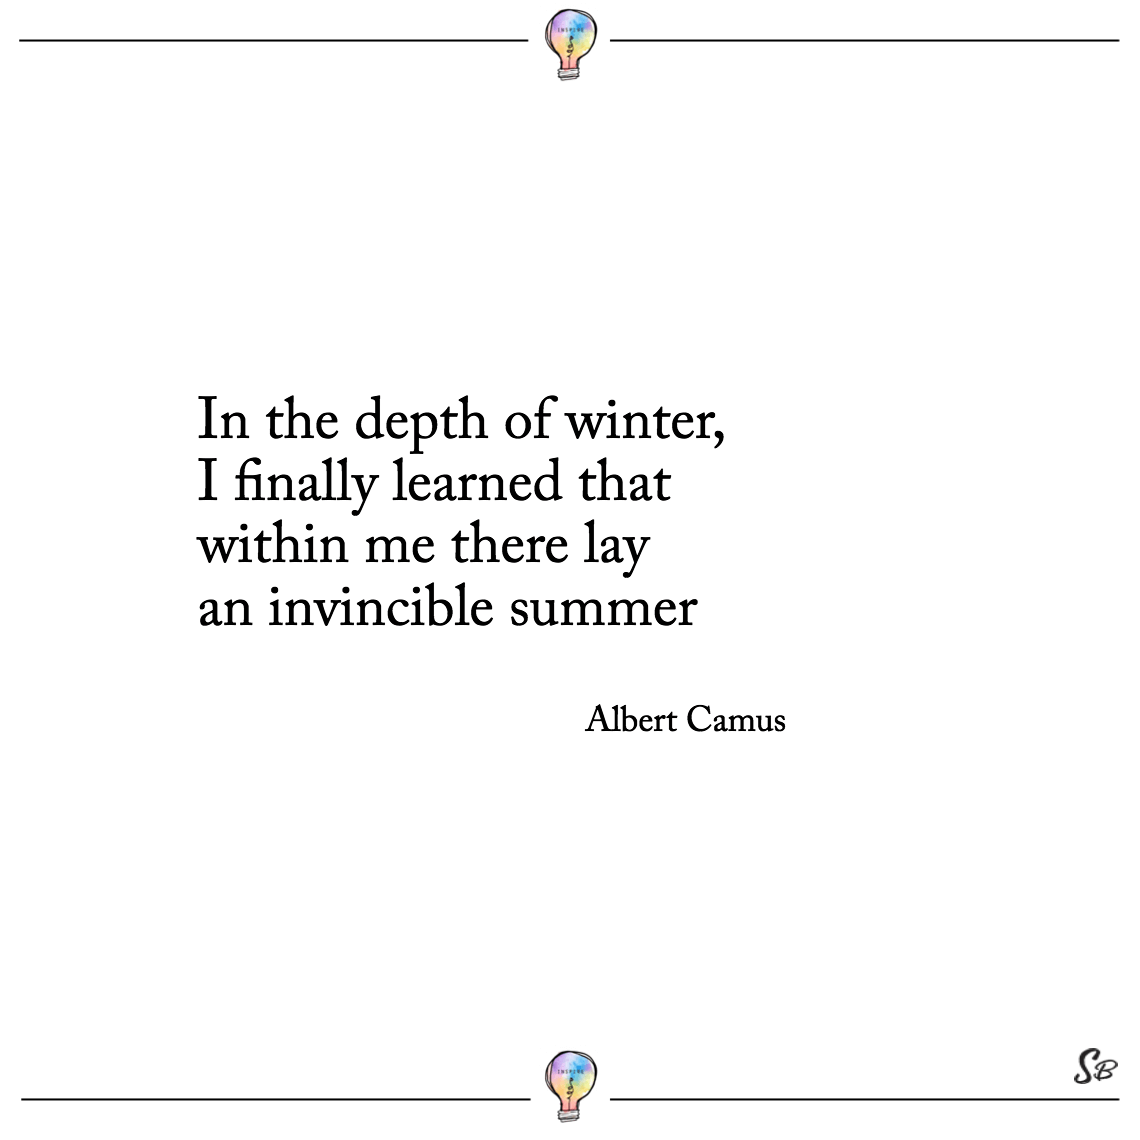 In the depth of winter, i finally learned that within me there lay an invincible summer albert camus deep quotes